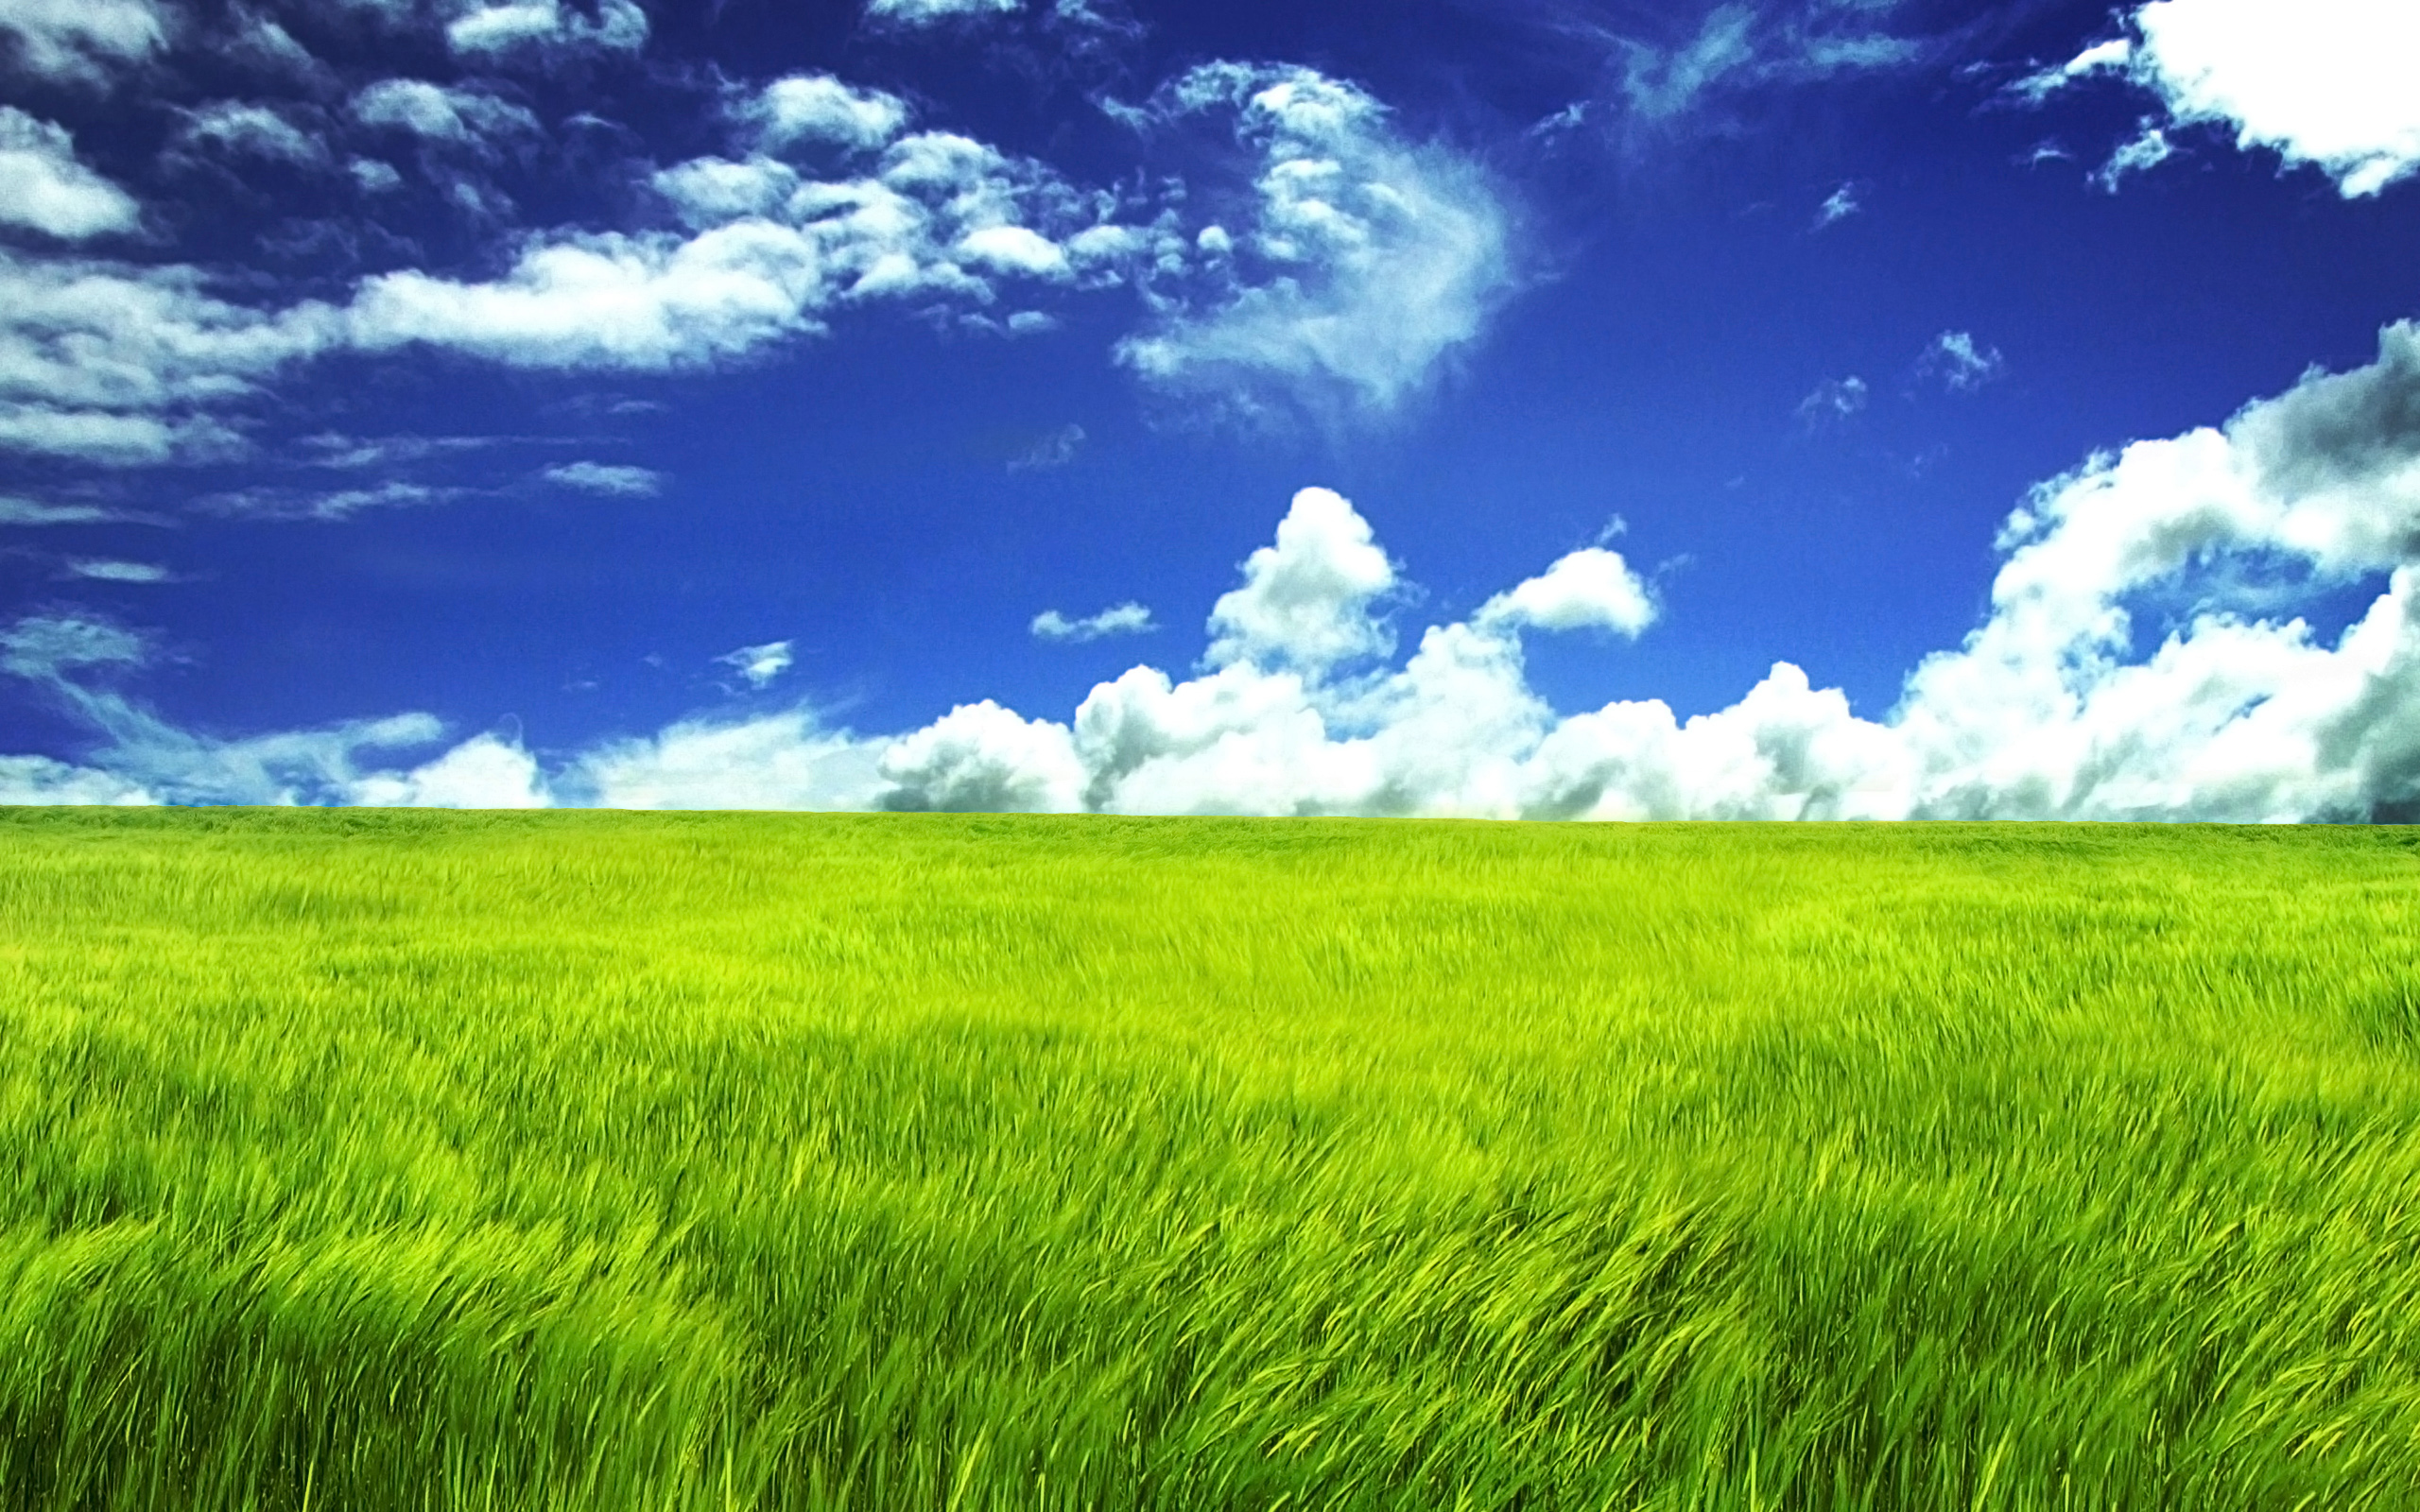 Blue sky and green field 25601600 wide wallpapers blue sky and green field 25601600 wide wallpapers voltagebd Gallery